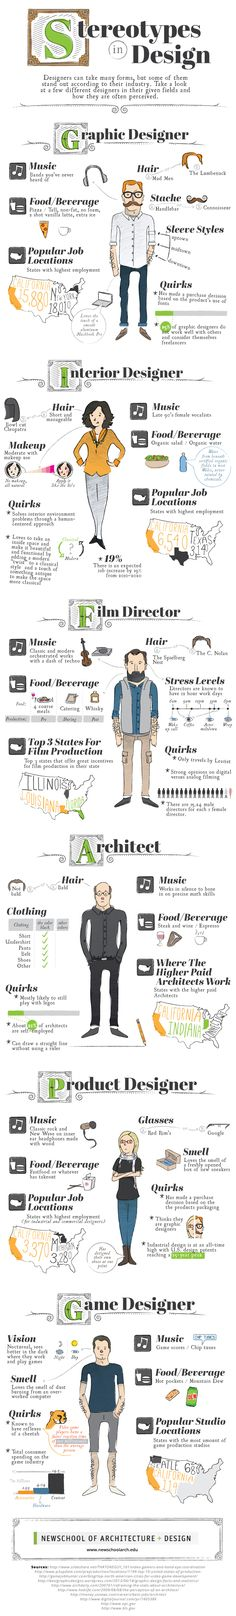 Architecture | Tipsögraphic | More architecture tips at